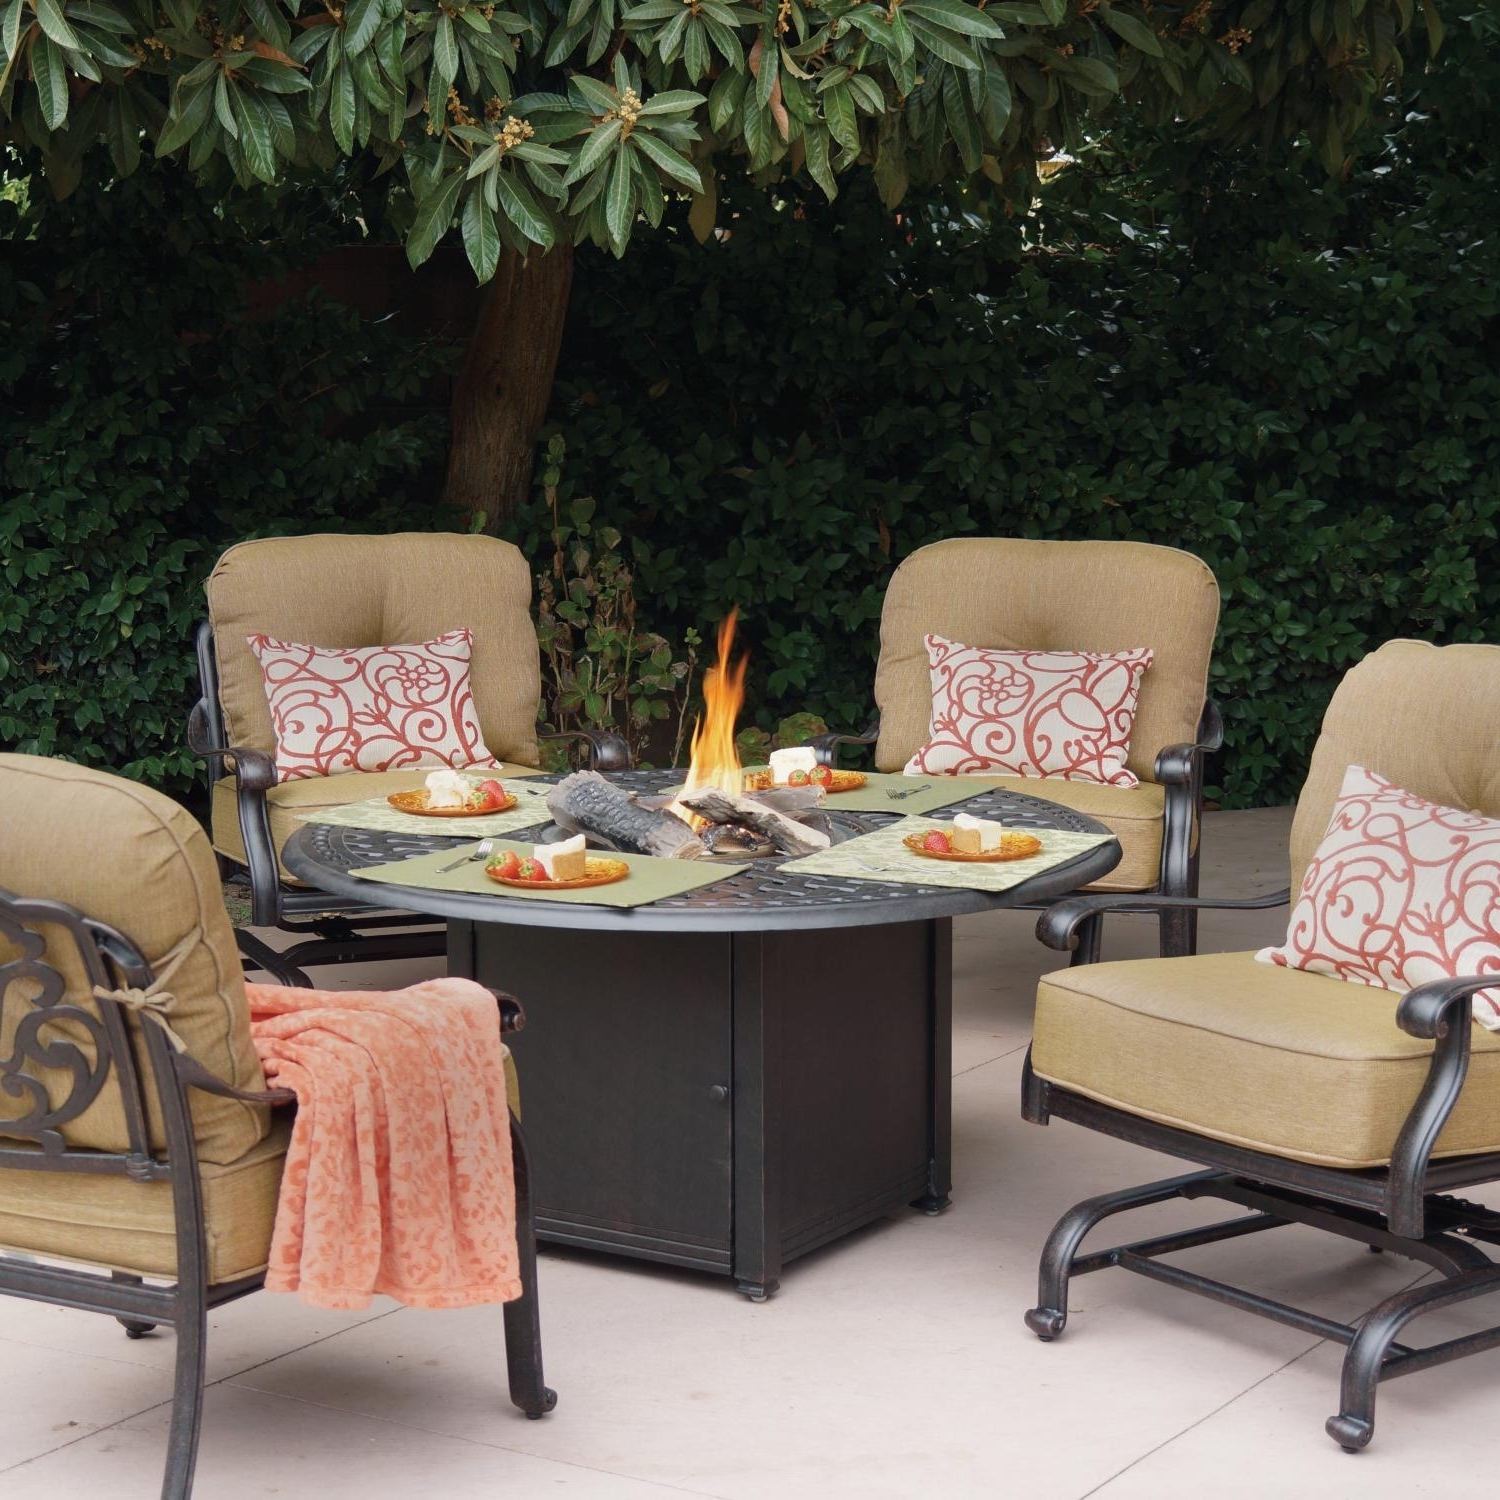 Fashionable Patio Conversation Sets Under $500 Pertaining To Premium Outdoor Seating Sets (View 8 of 20)